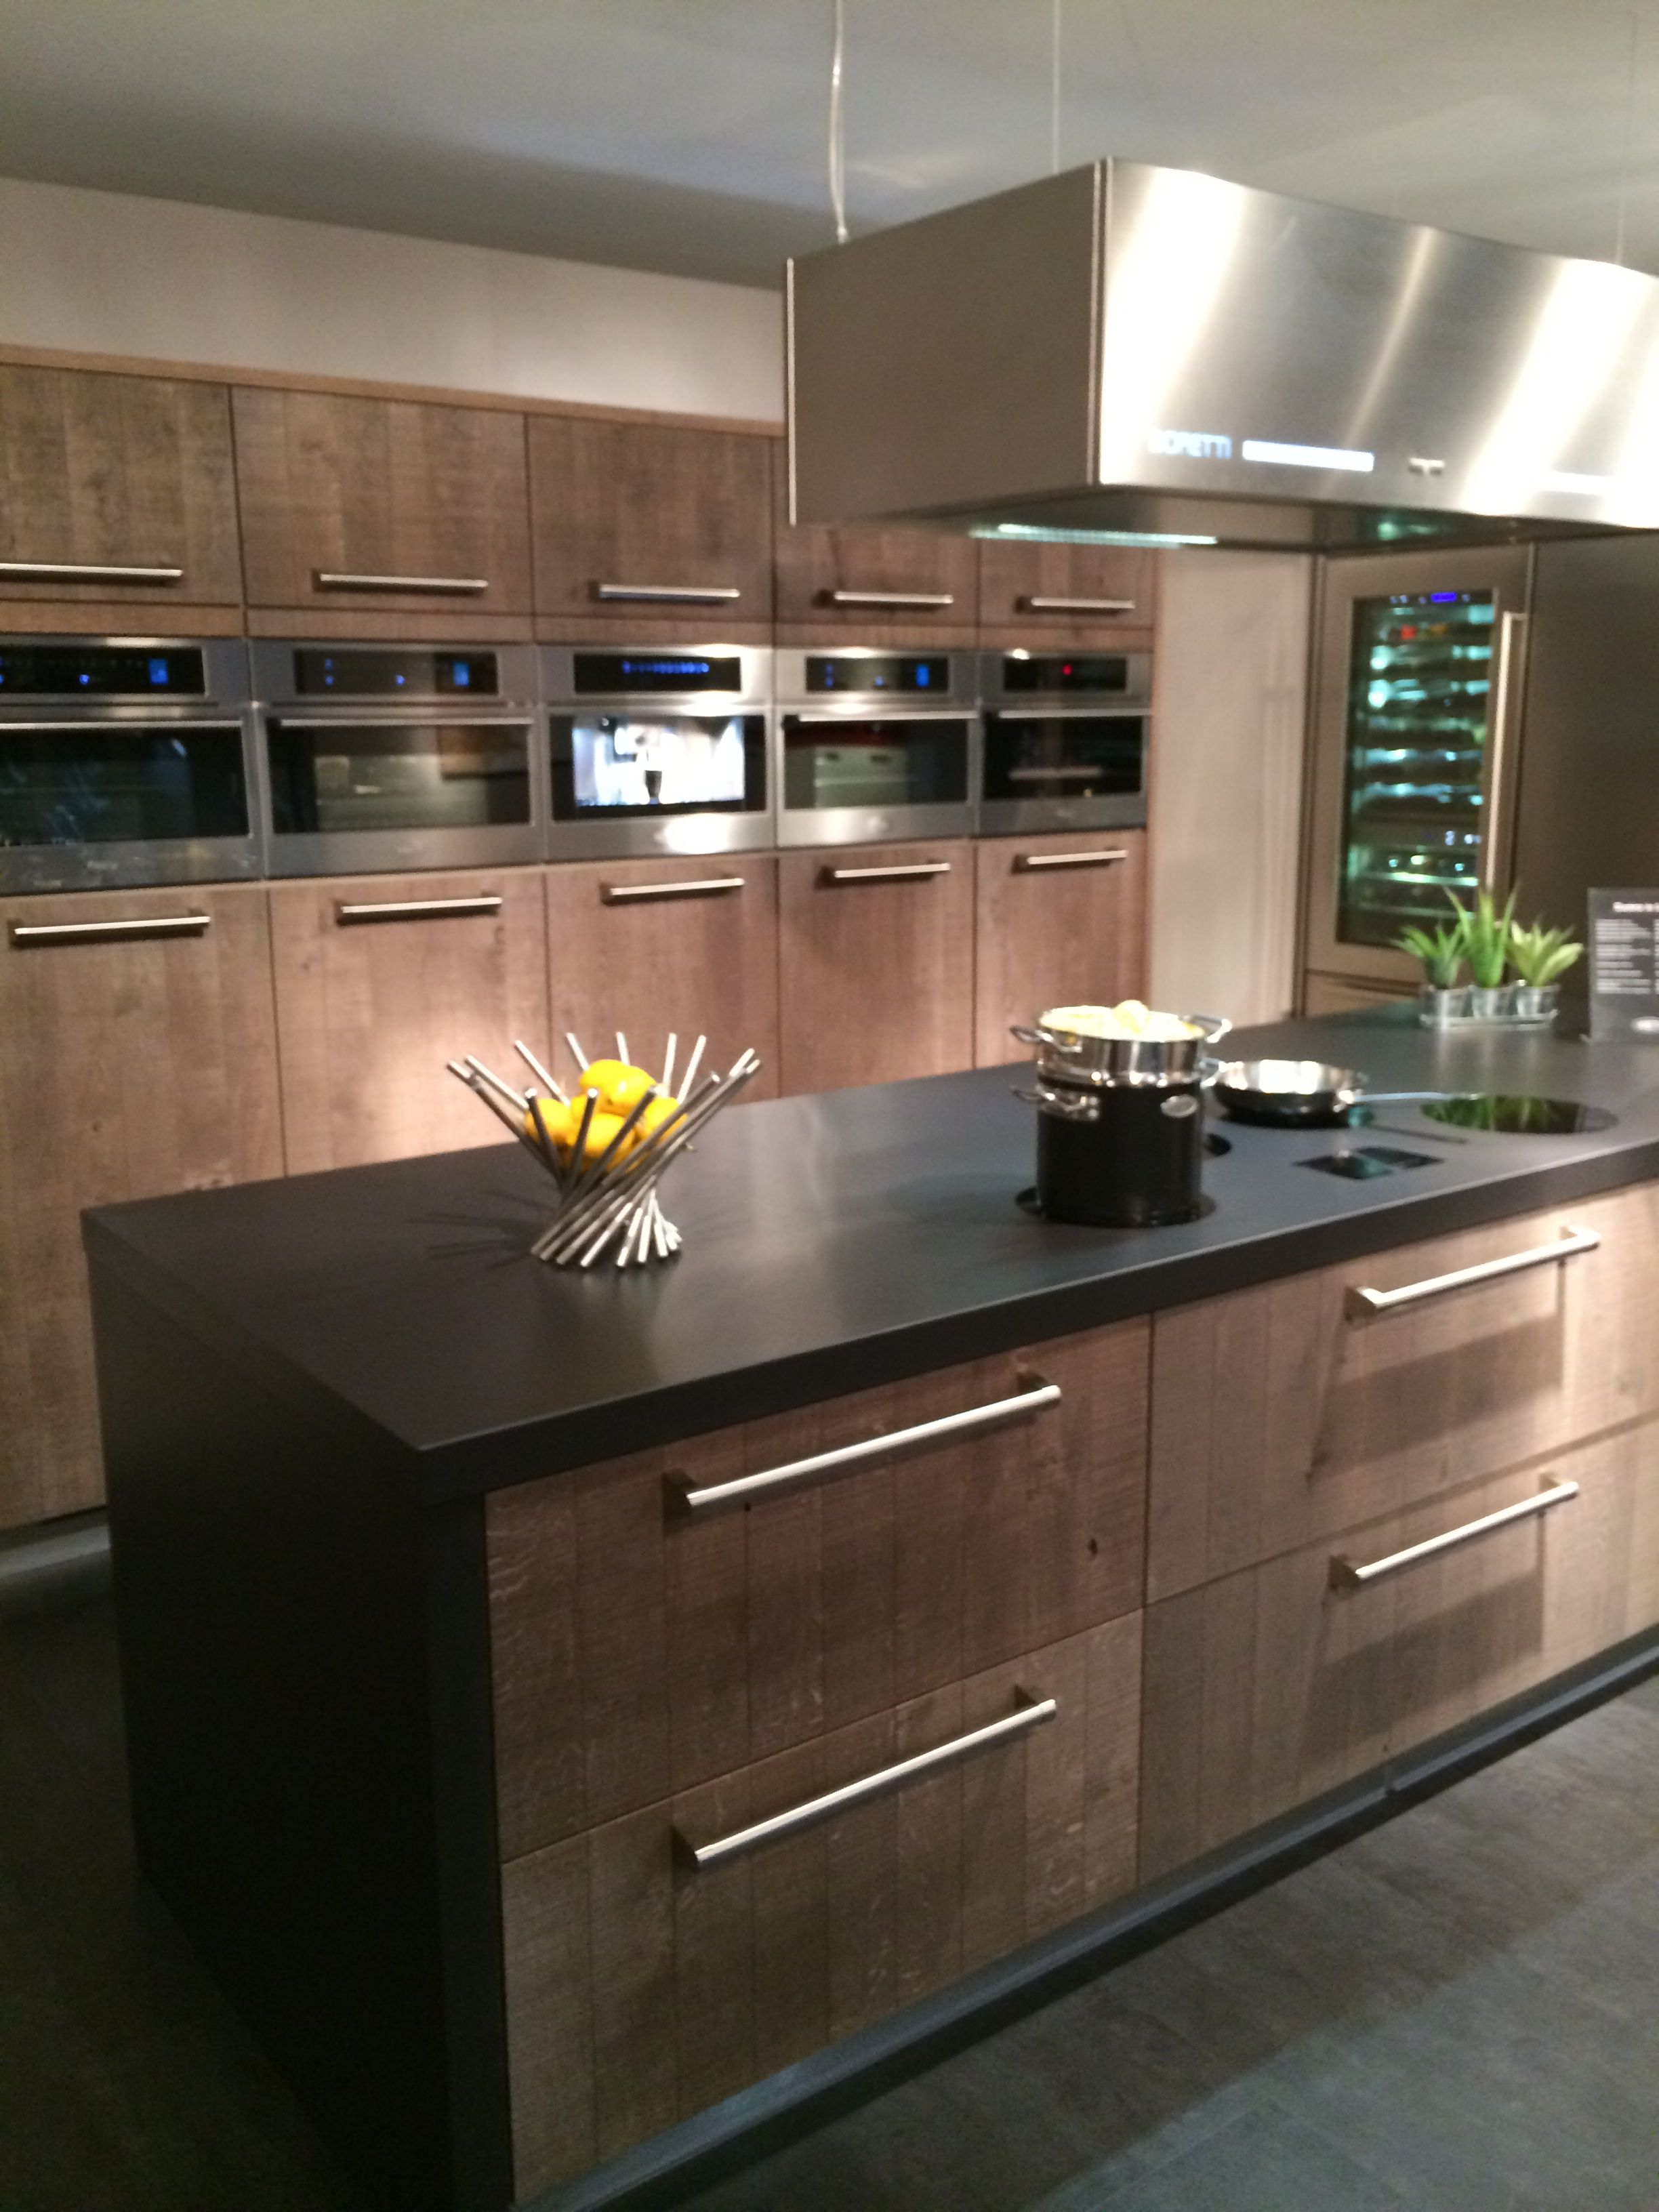 Showroom Keukenapparatuur Boretti Reviews Fabrieksinformatie Kitchen